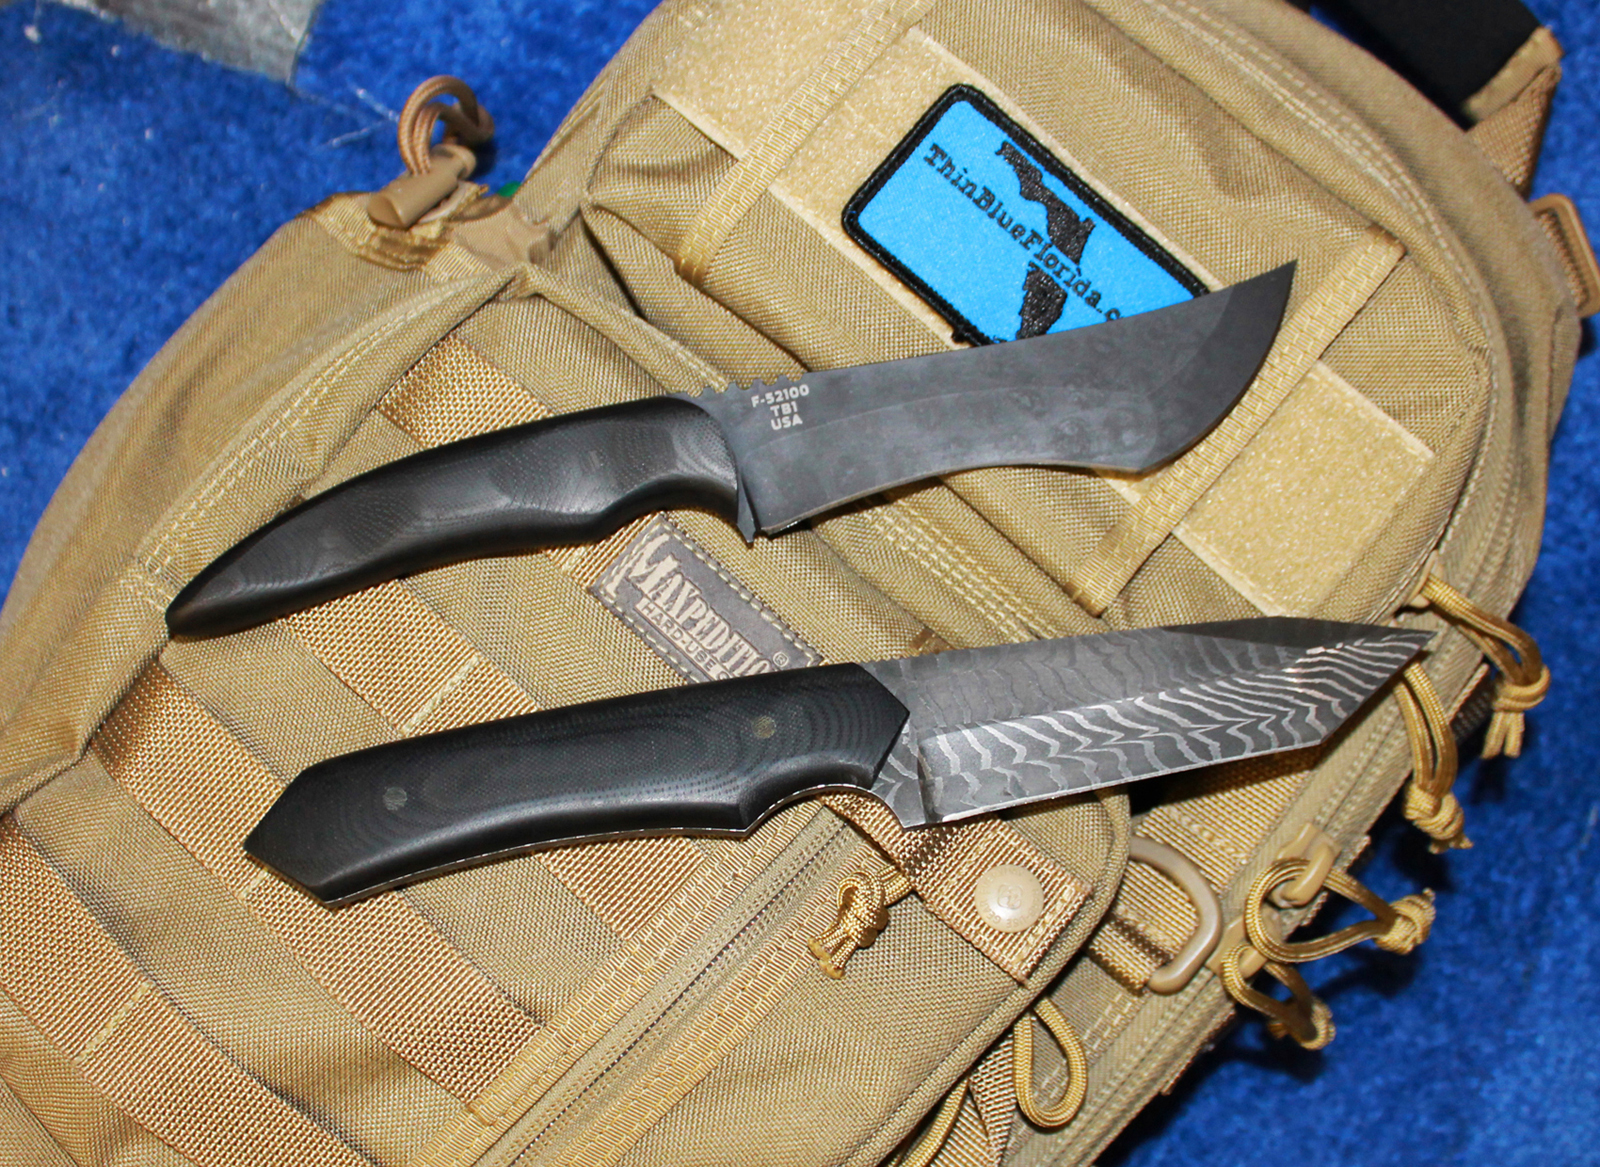 Schenk Knives duo reverse